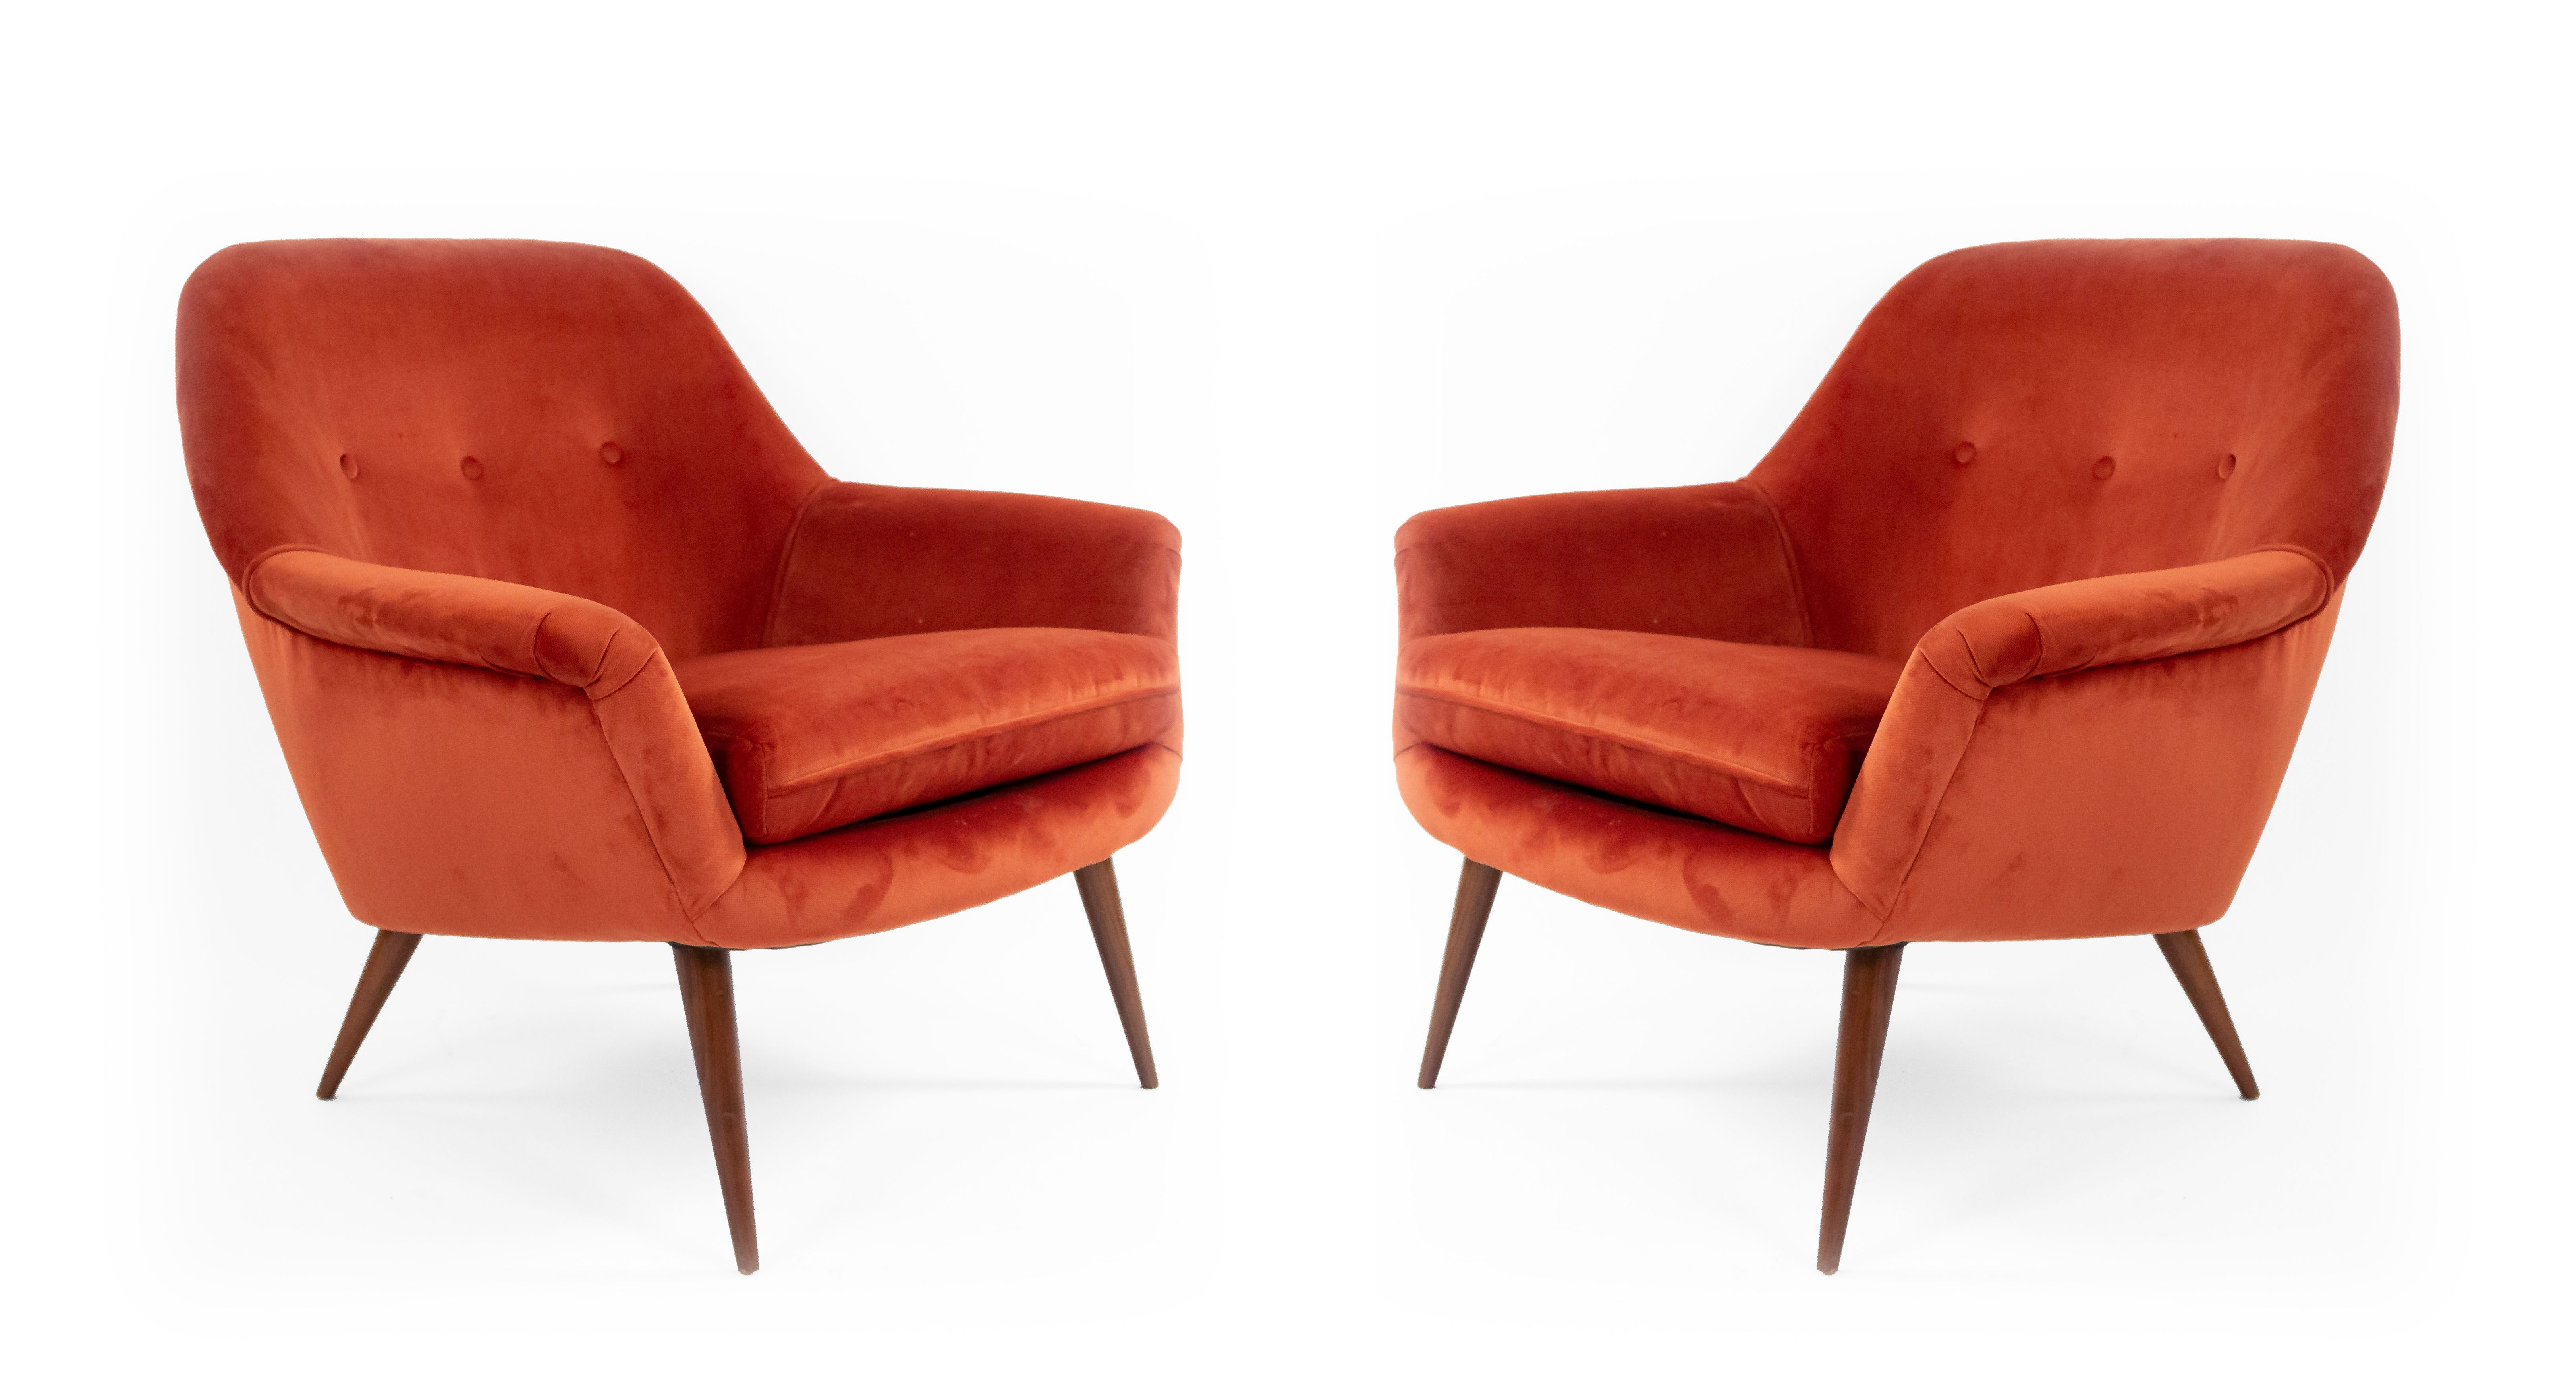 2 contemporary rust orange velvet arm chairs with button